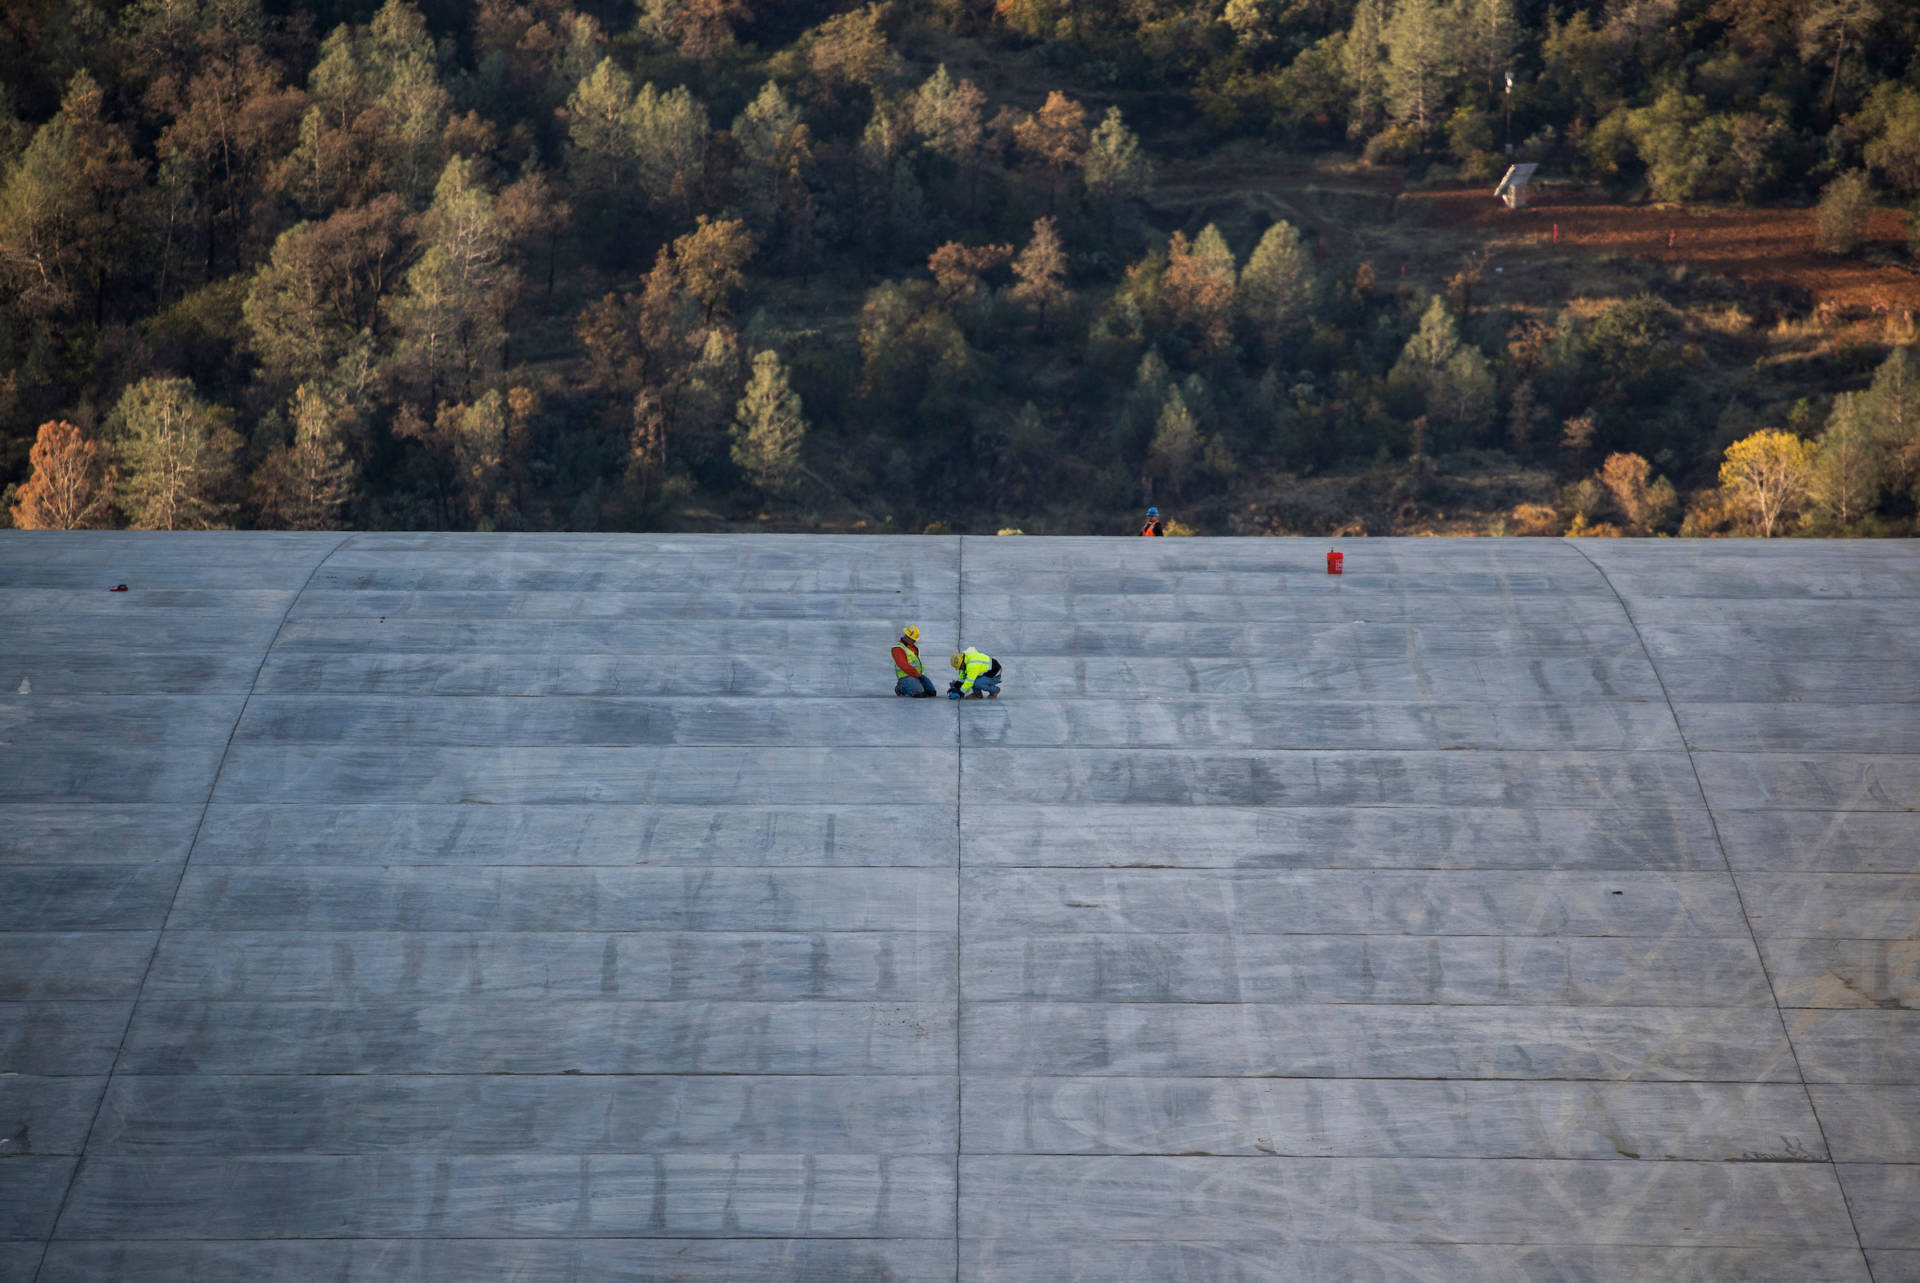 Workers last week continued finishing work on the upper chute of Oroville Dam's main spillway. Ken James/California Department of Water Resources